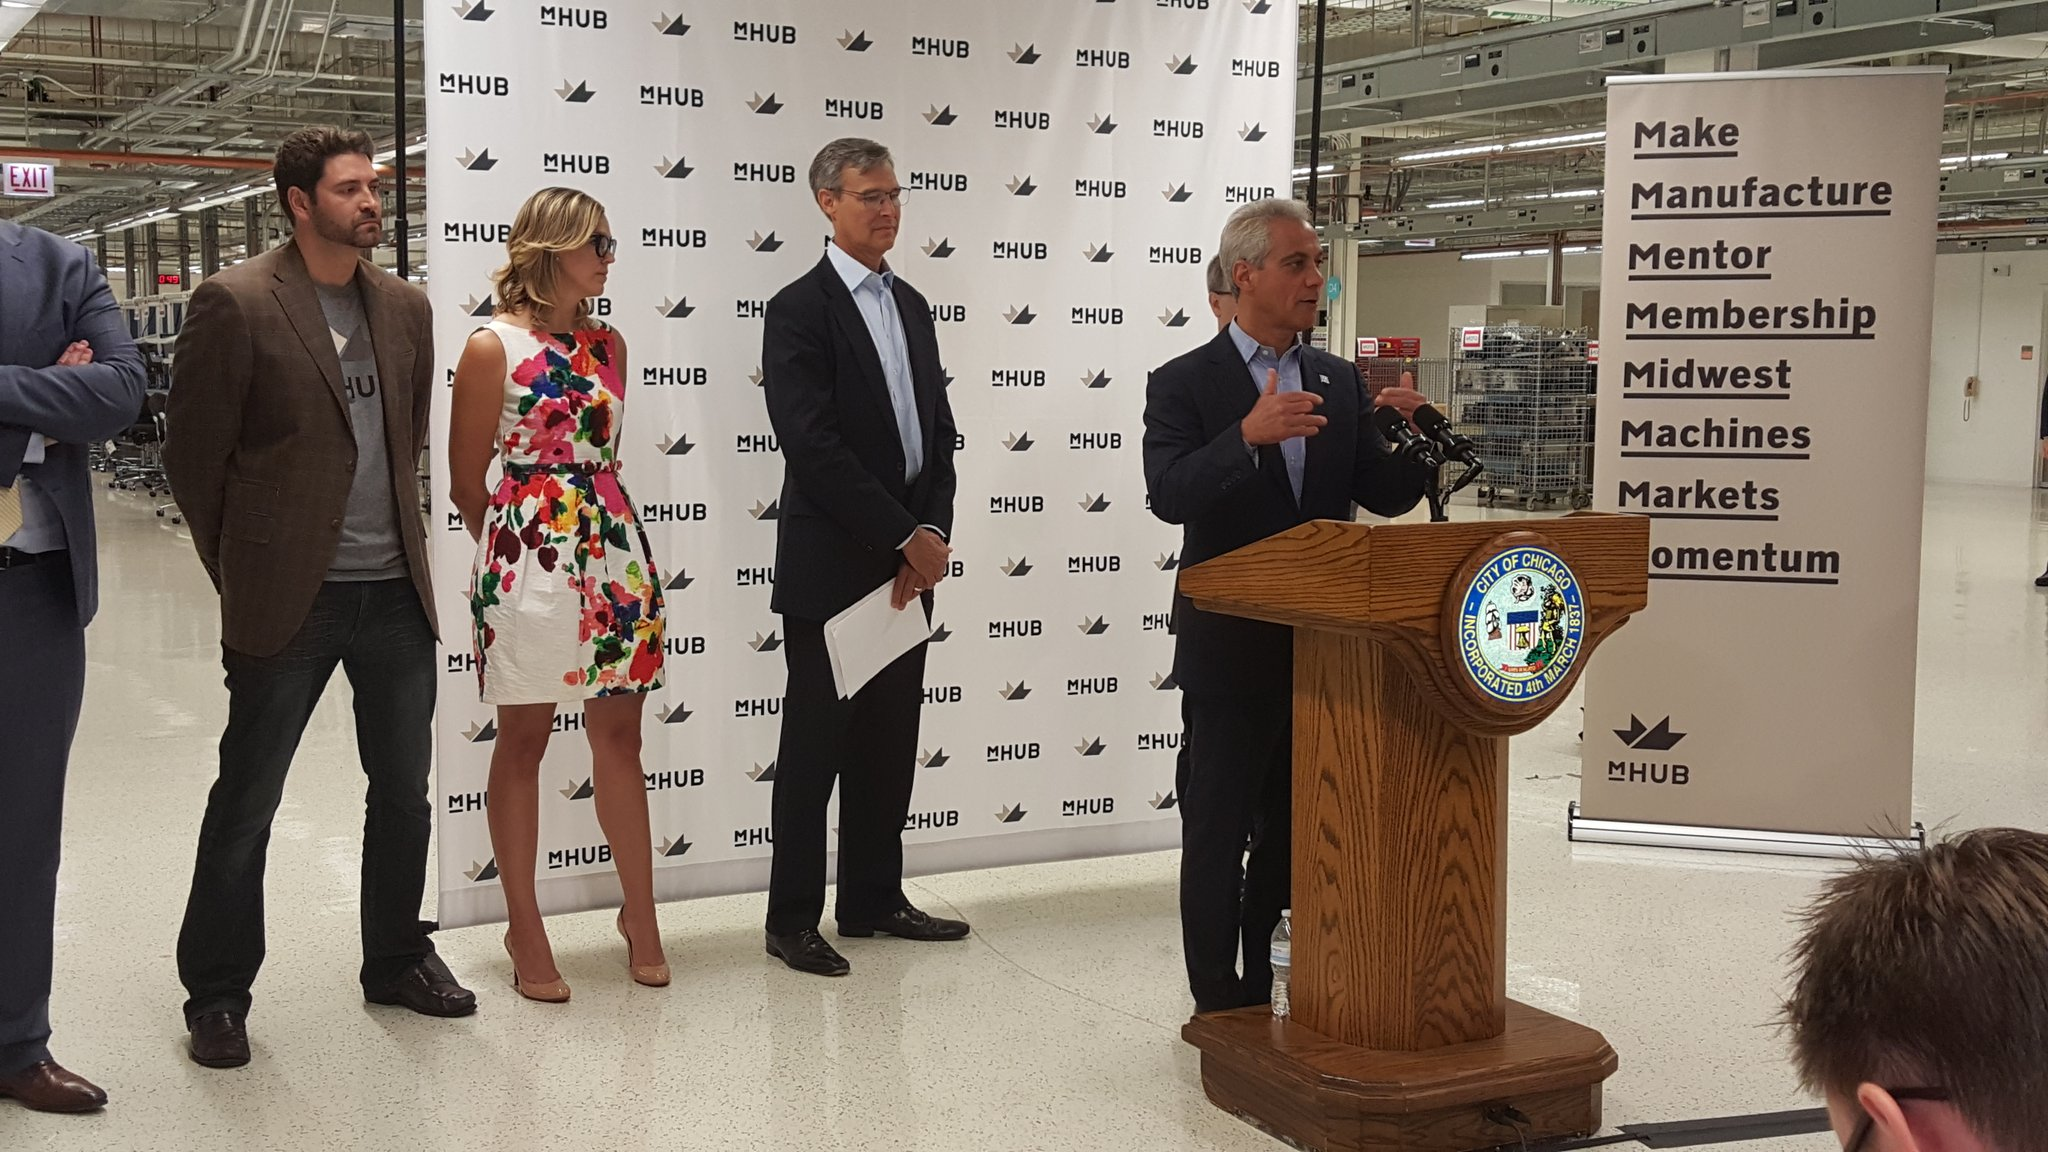 Mayor Emanual speaking at press conference announcing the launch of mHUB at 965 W. Chicago Ave.